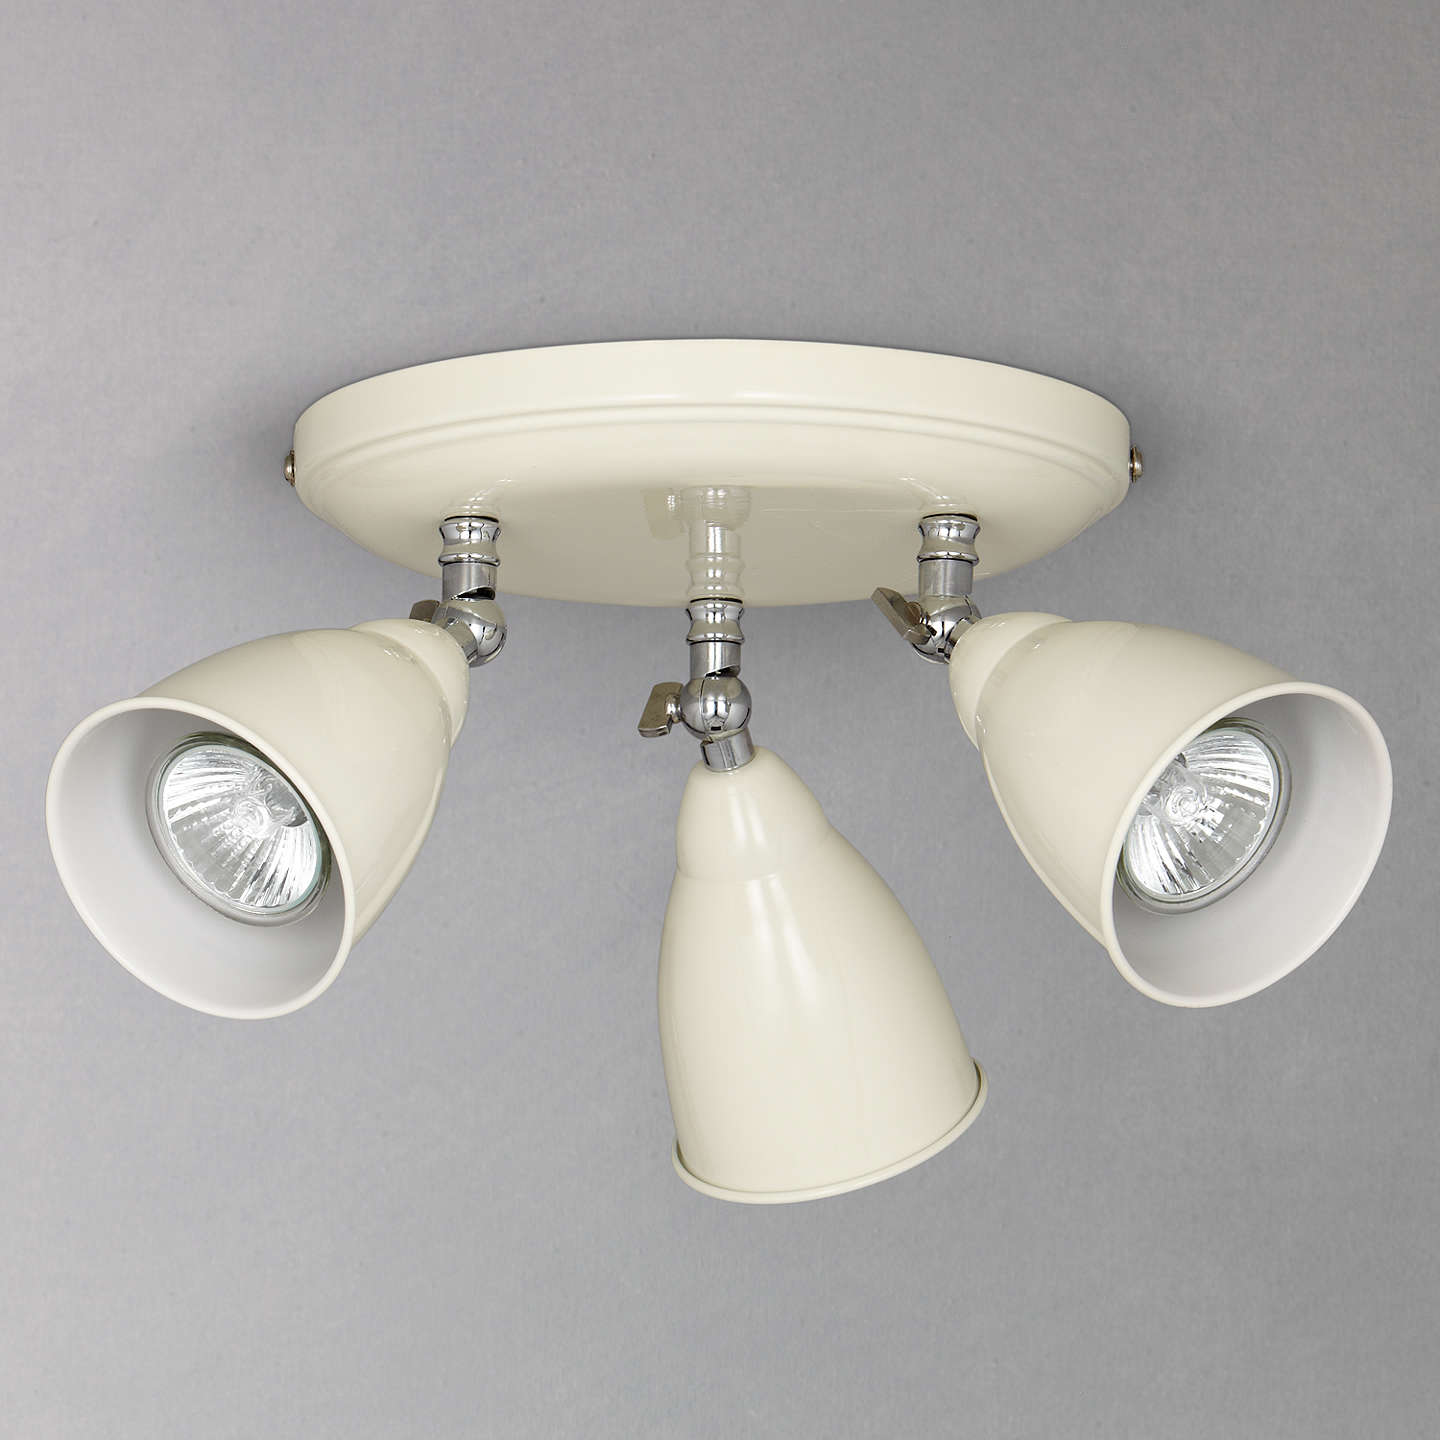 John lewis plymouth 3 led spotlight ceiling plate at john lewis buyjohn lewis plymouth 3 led spotlight ceiling plate ivory online at johnlewis aloadofball Images